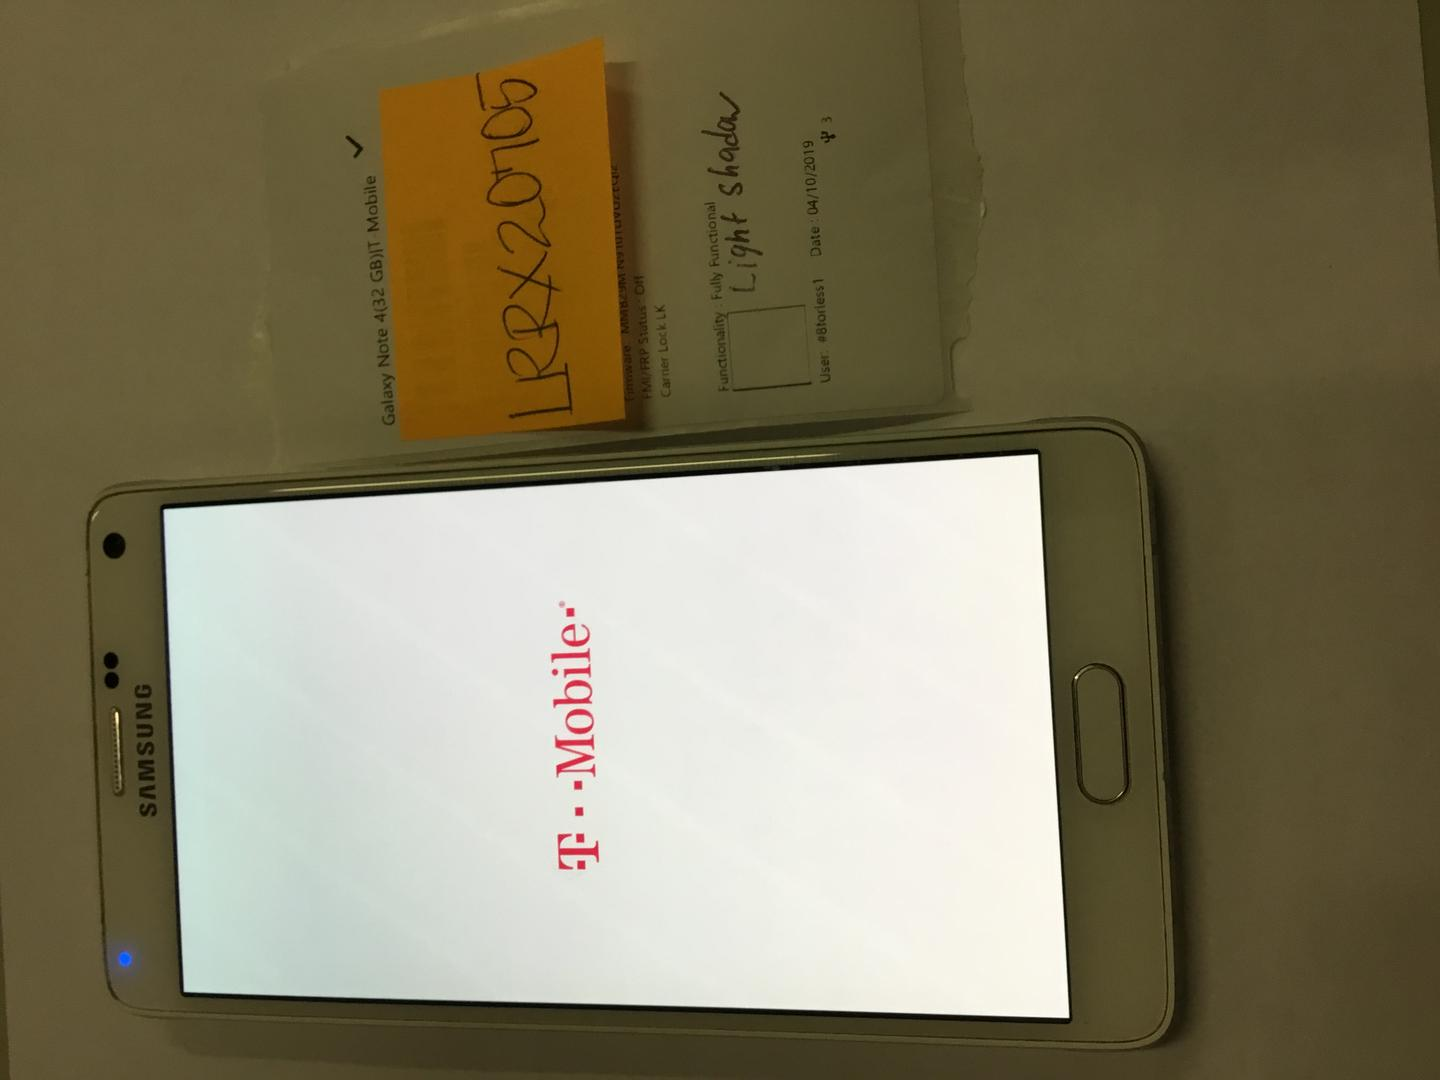 Samsung Galaxy Note 4 (T-Mobile) [N910T] - White, 32 GB